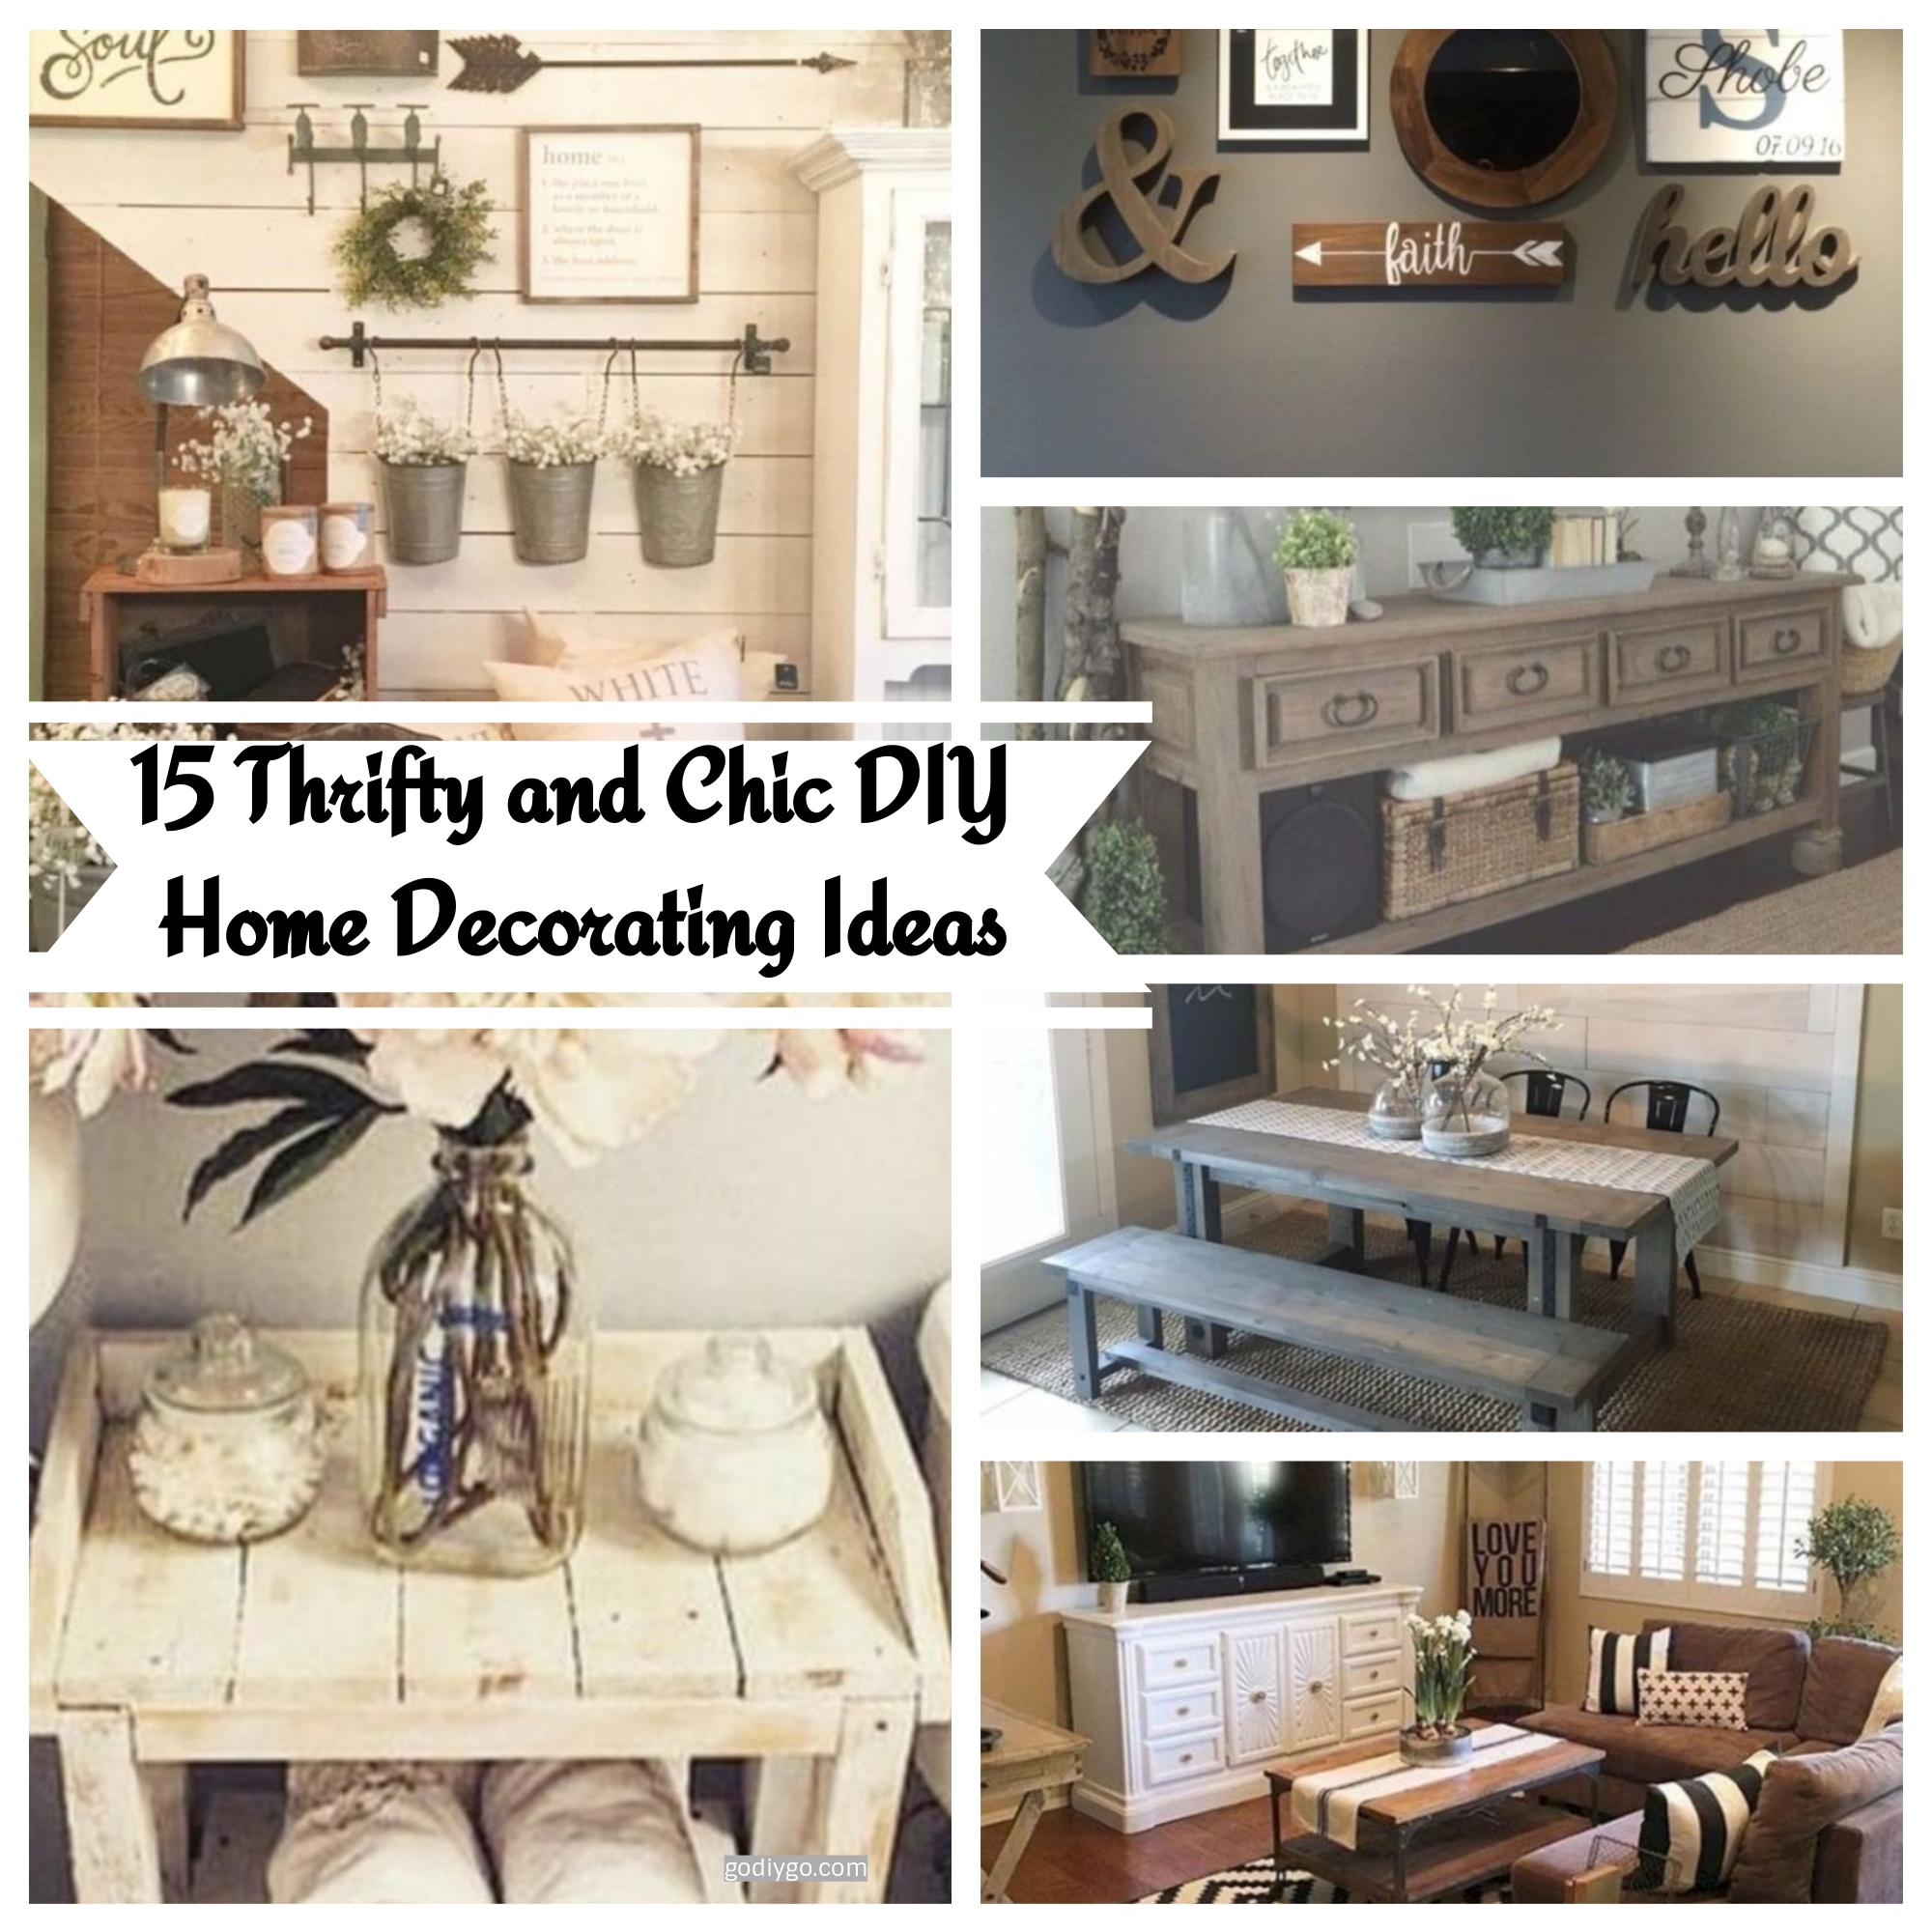 Home Design Ideas Decor: 15 Thrifty And Chic DIY Home Decorating Ideas